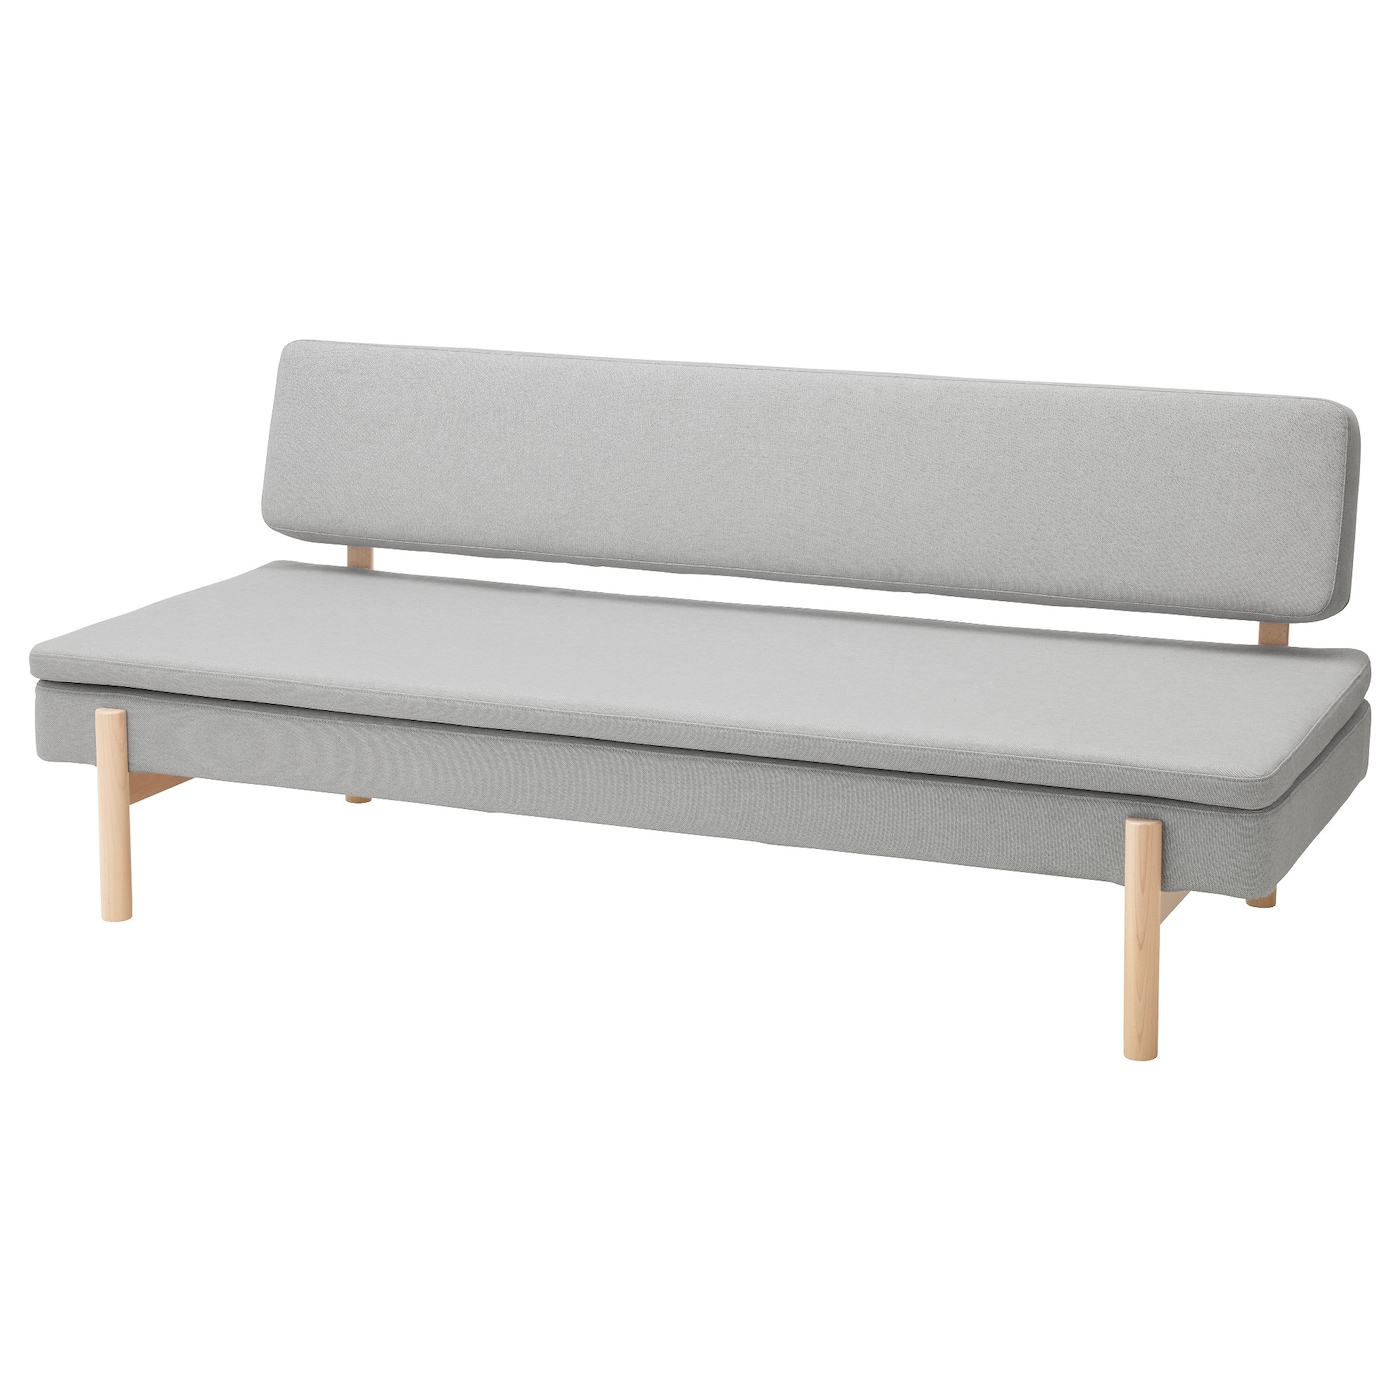 IKEA YPPERLIG 3 Seat Sofa Bed